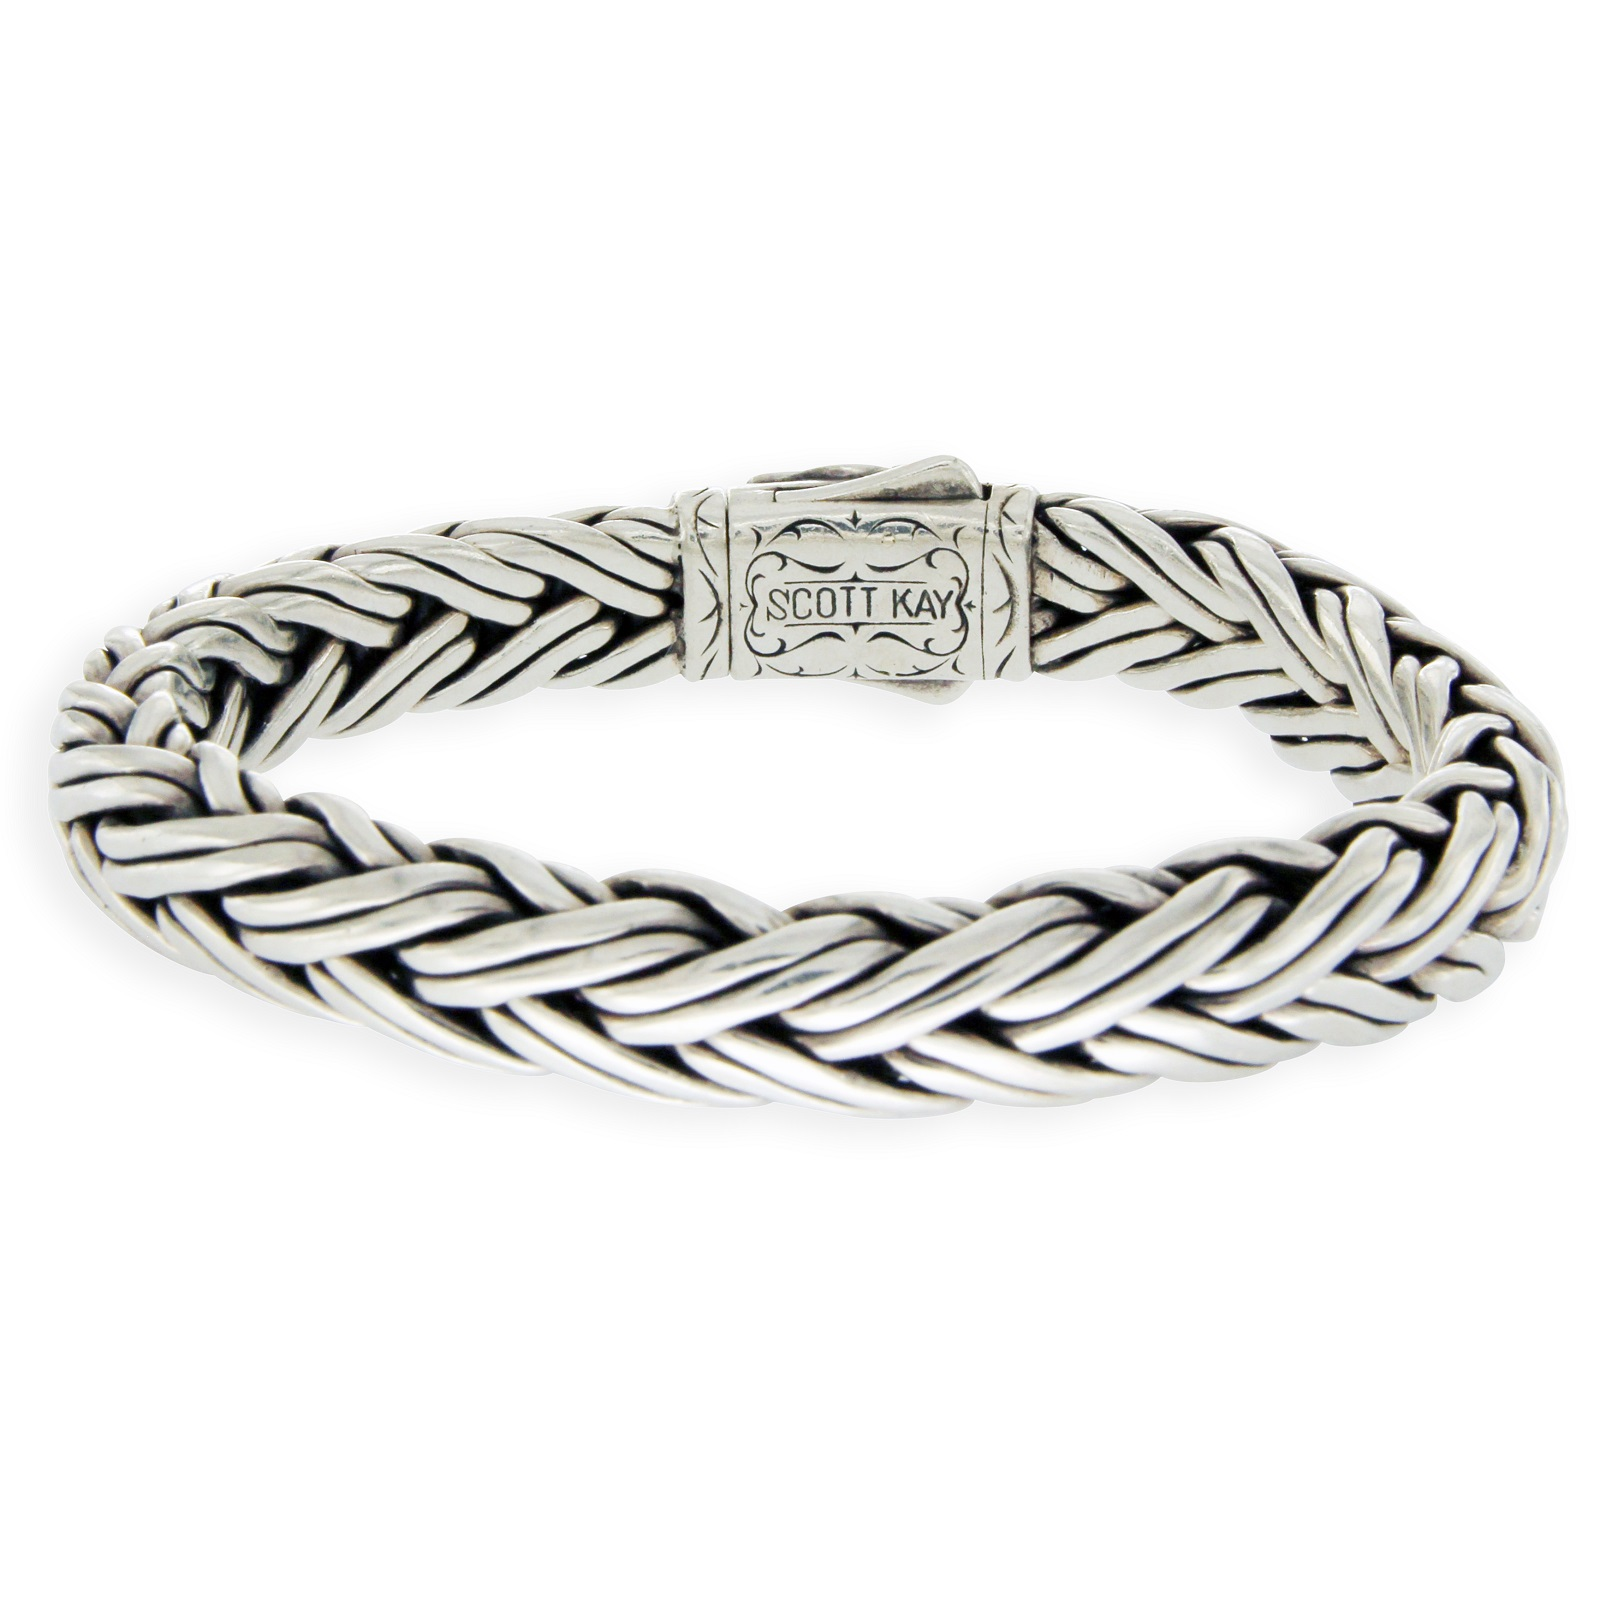 "Image of ""Scott Kay 925 Sterling Silver & 18K Yellow Gold Cable Bracelet"""